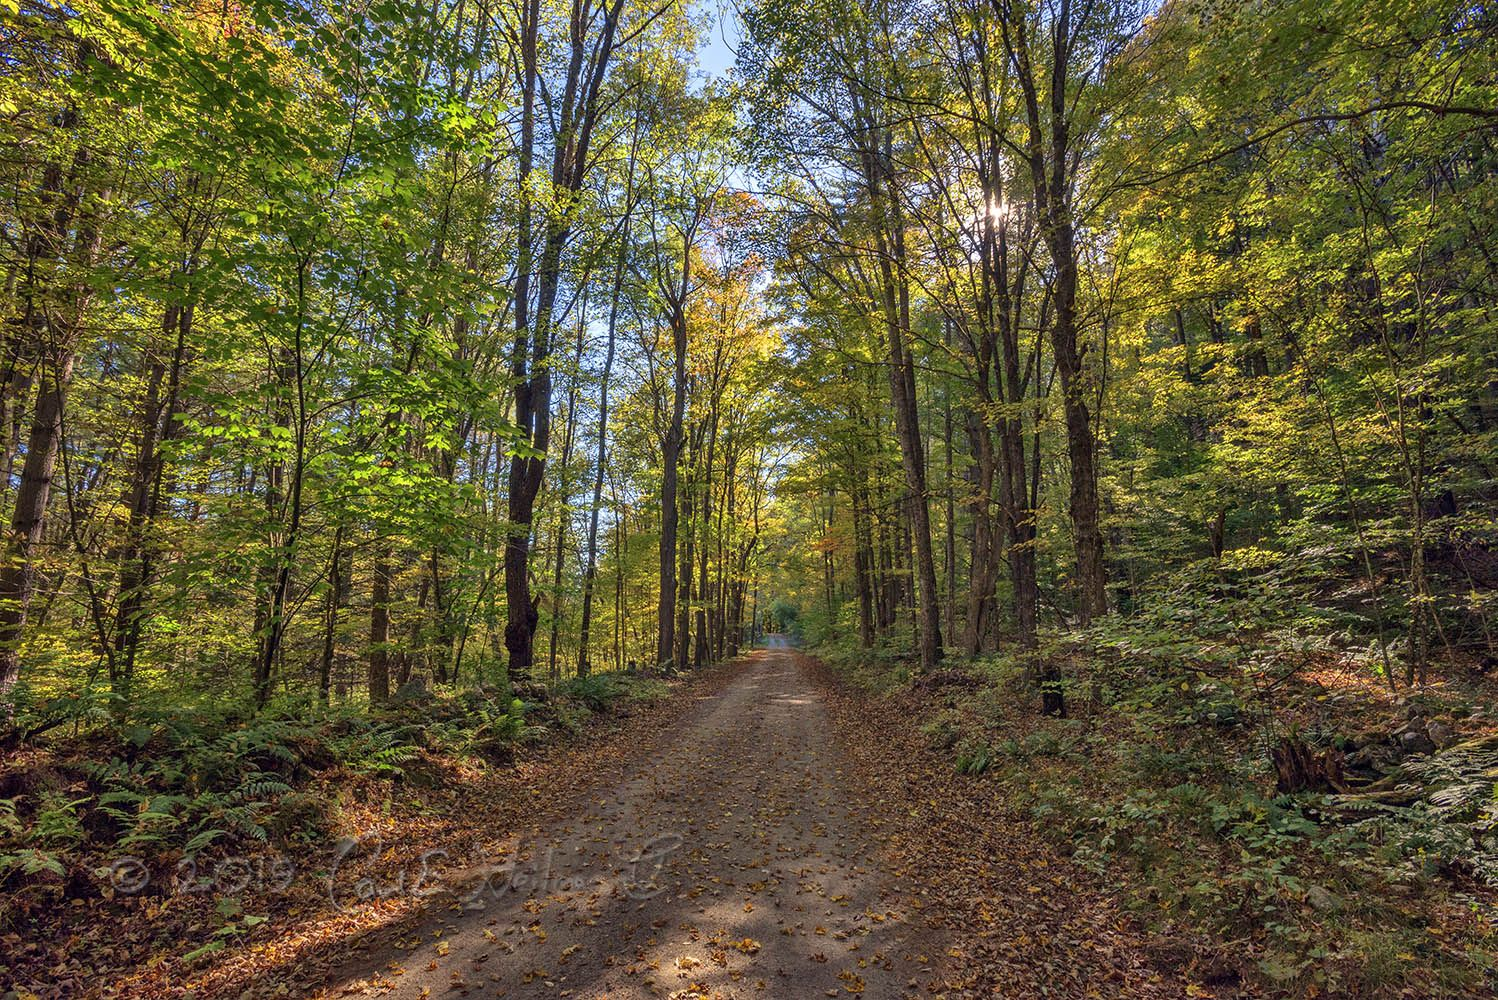 5 The Trails of the Adirondacks - Forest path